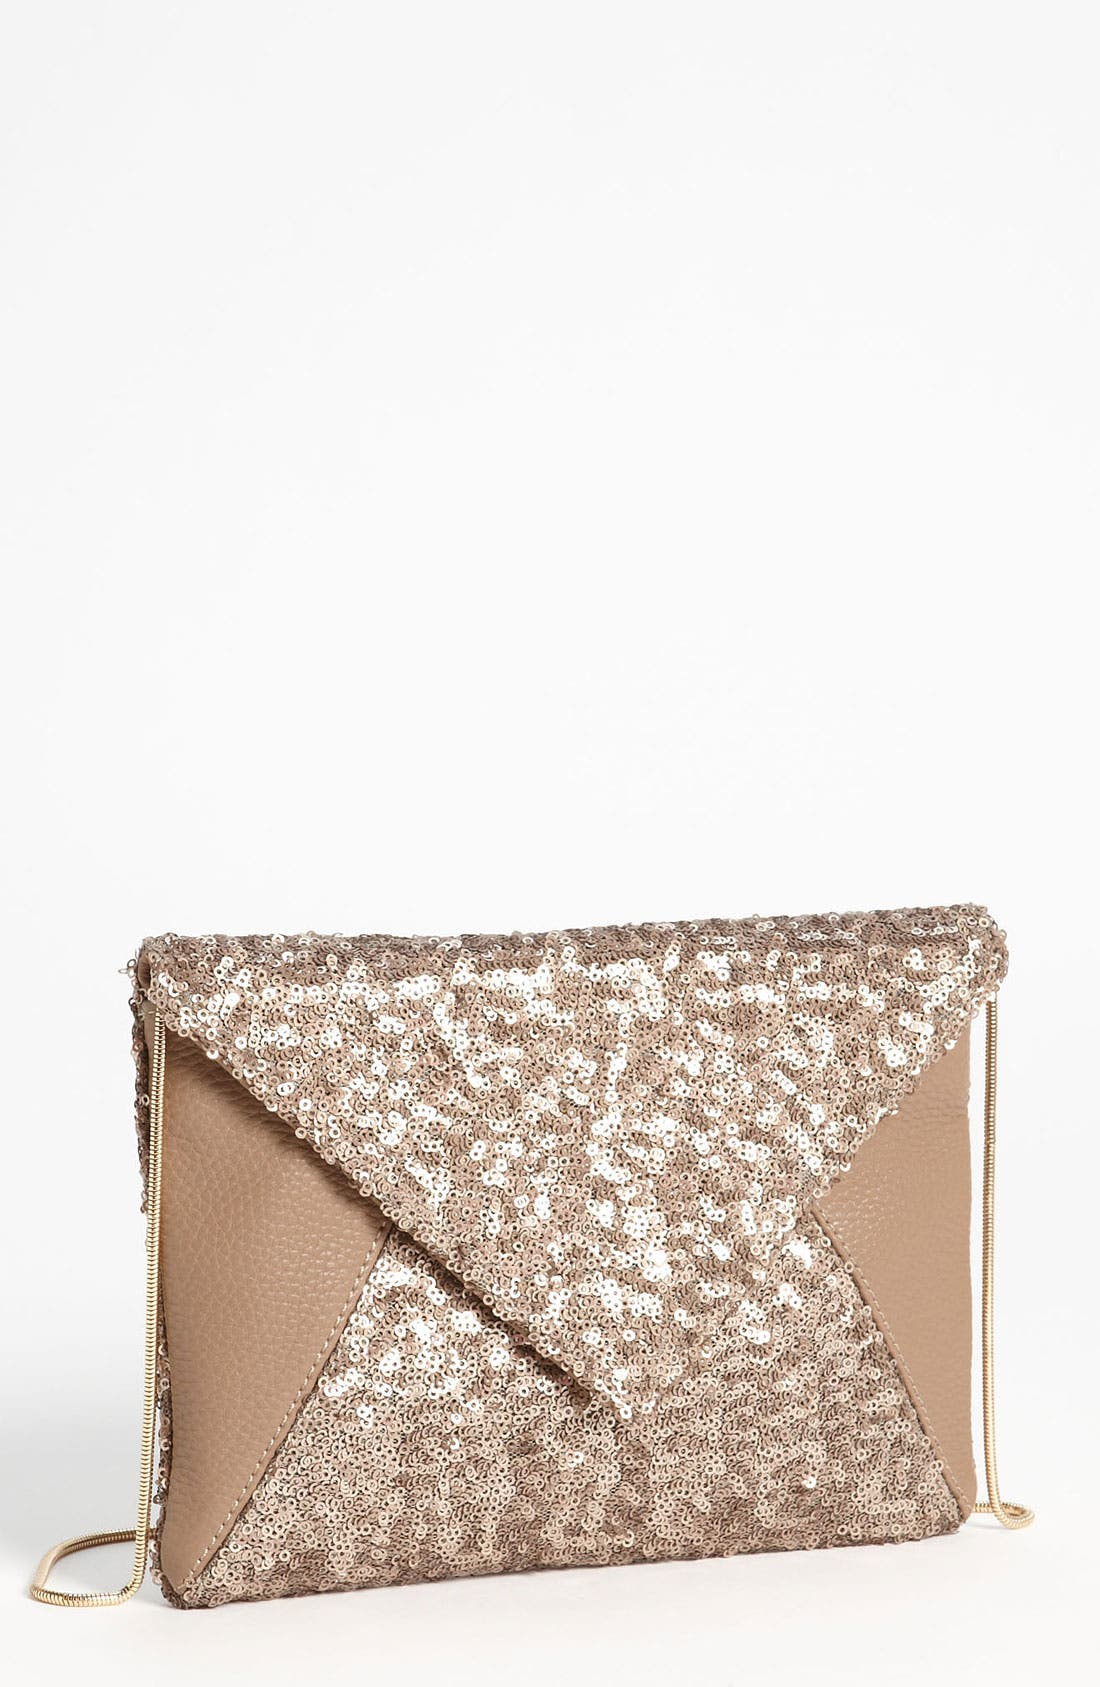 Alternate Image 1 Selected - Deux Lux 'Anais' Envelope Clutch